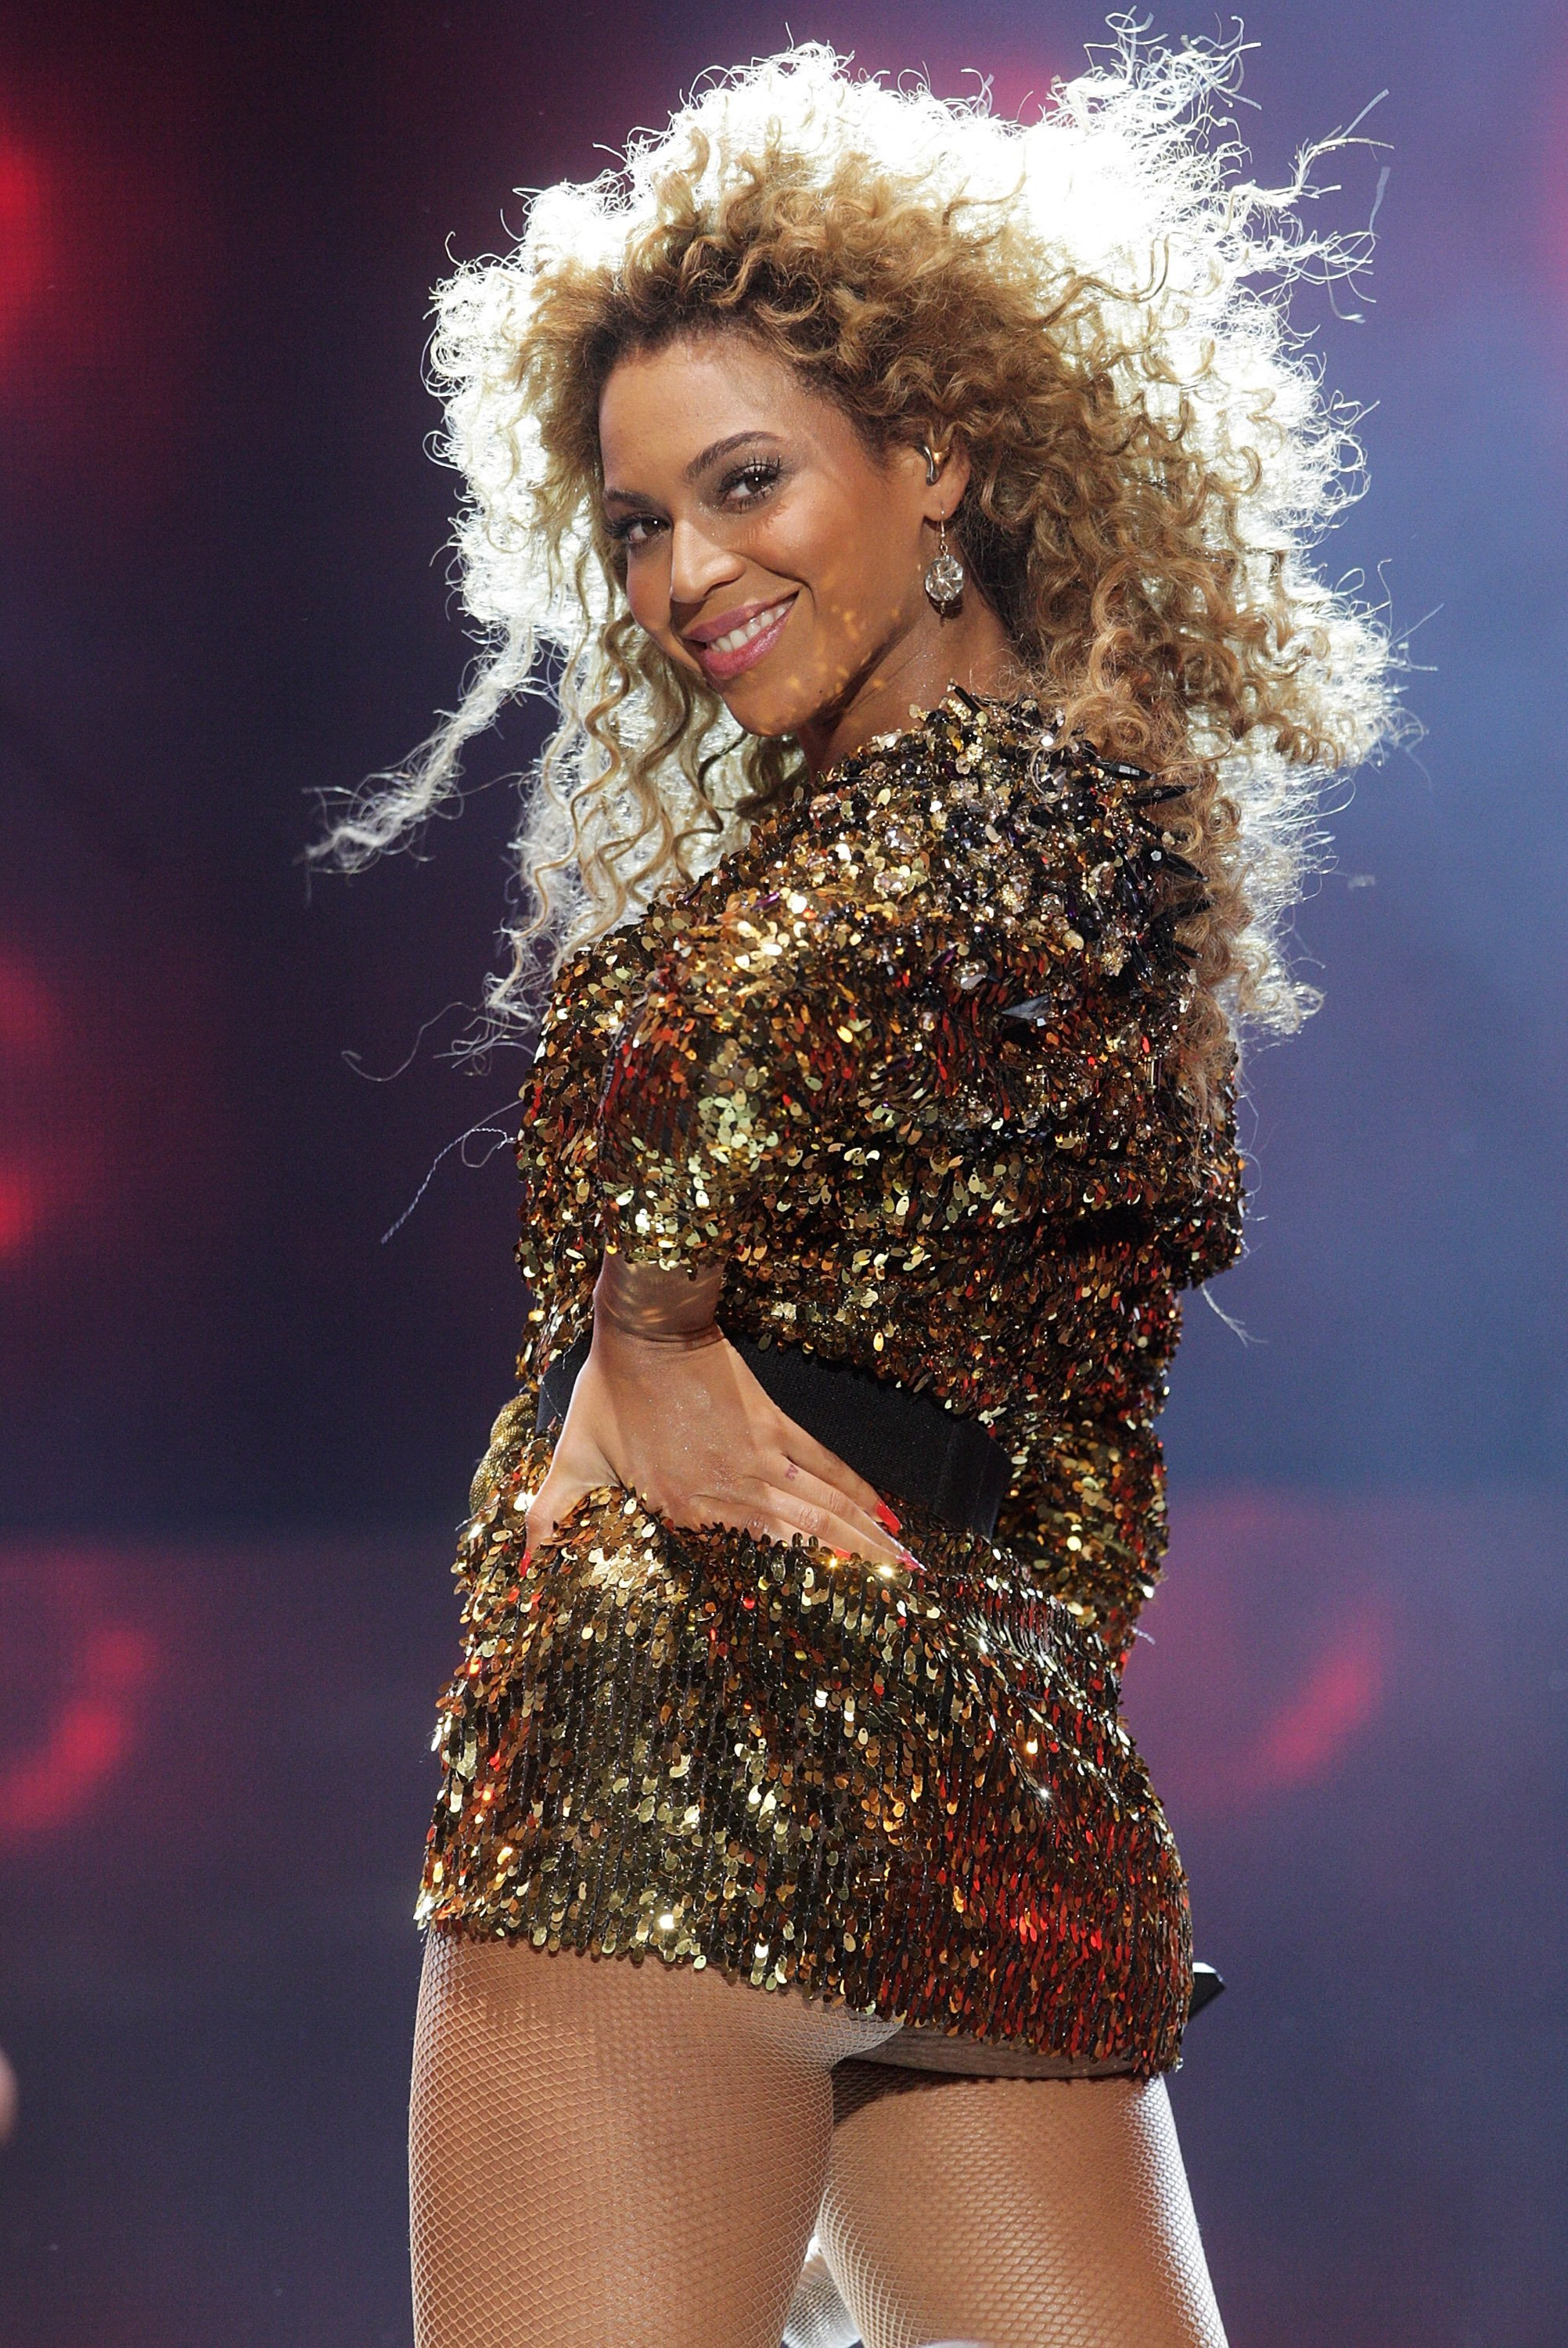 Beyonce on stage at the 2011 Glastonbury Festival in England. | Photo: Getty Images